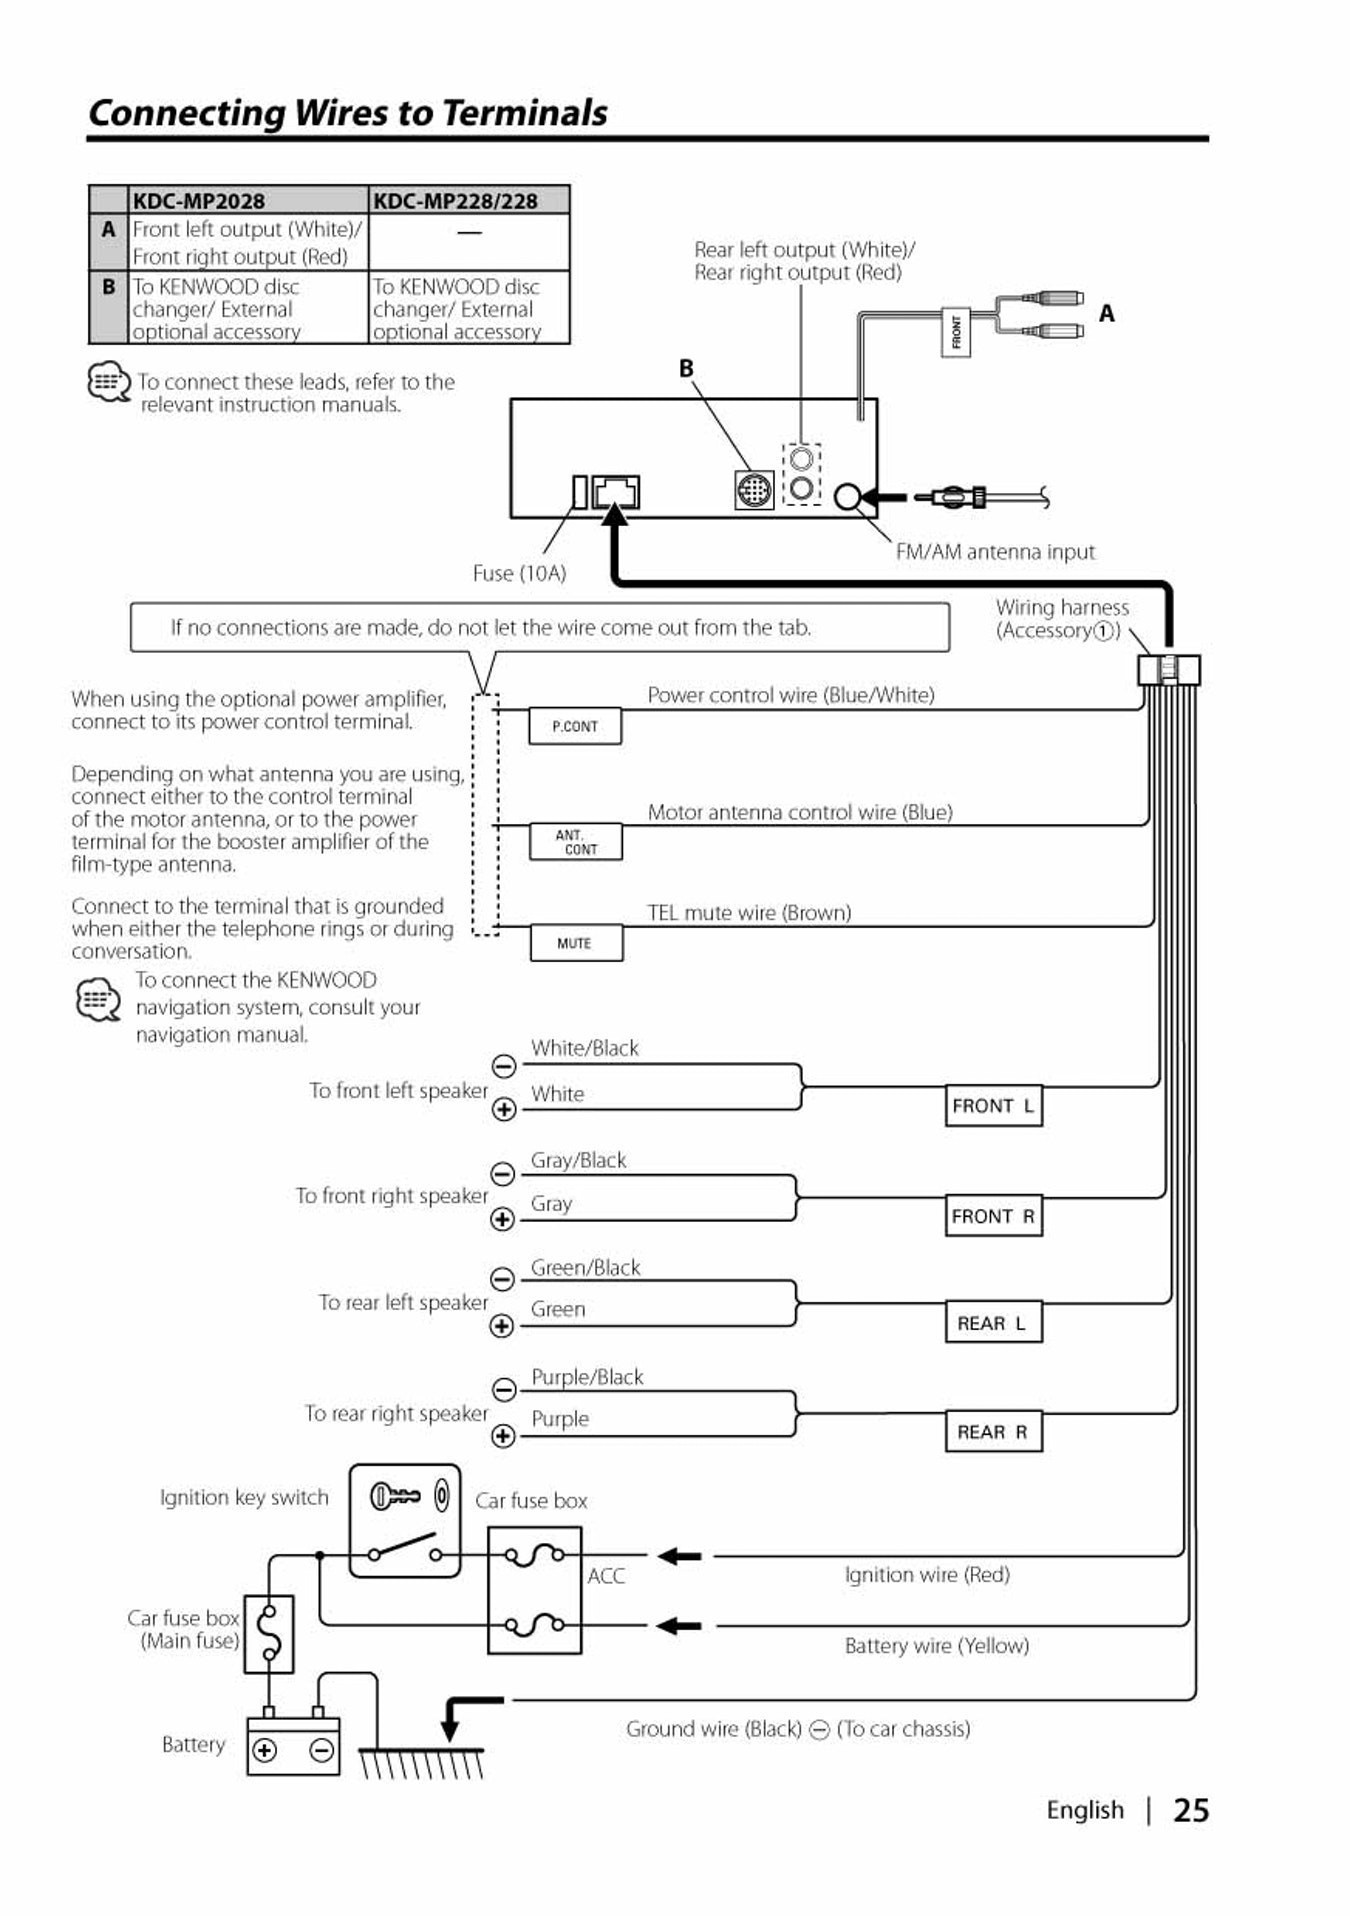 Ddx372bt Wiring Schematic Wiring Diagram Data Pearl Harbor USS Downes Ddx372bt Wiring Schematic